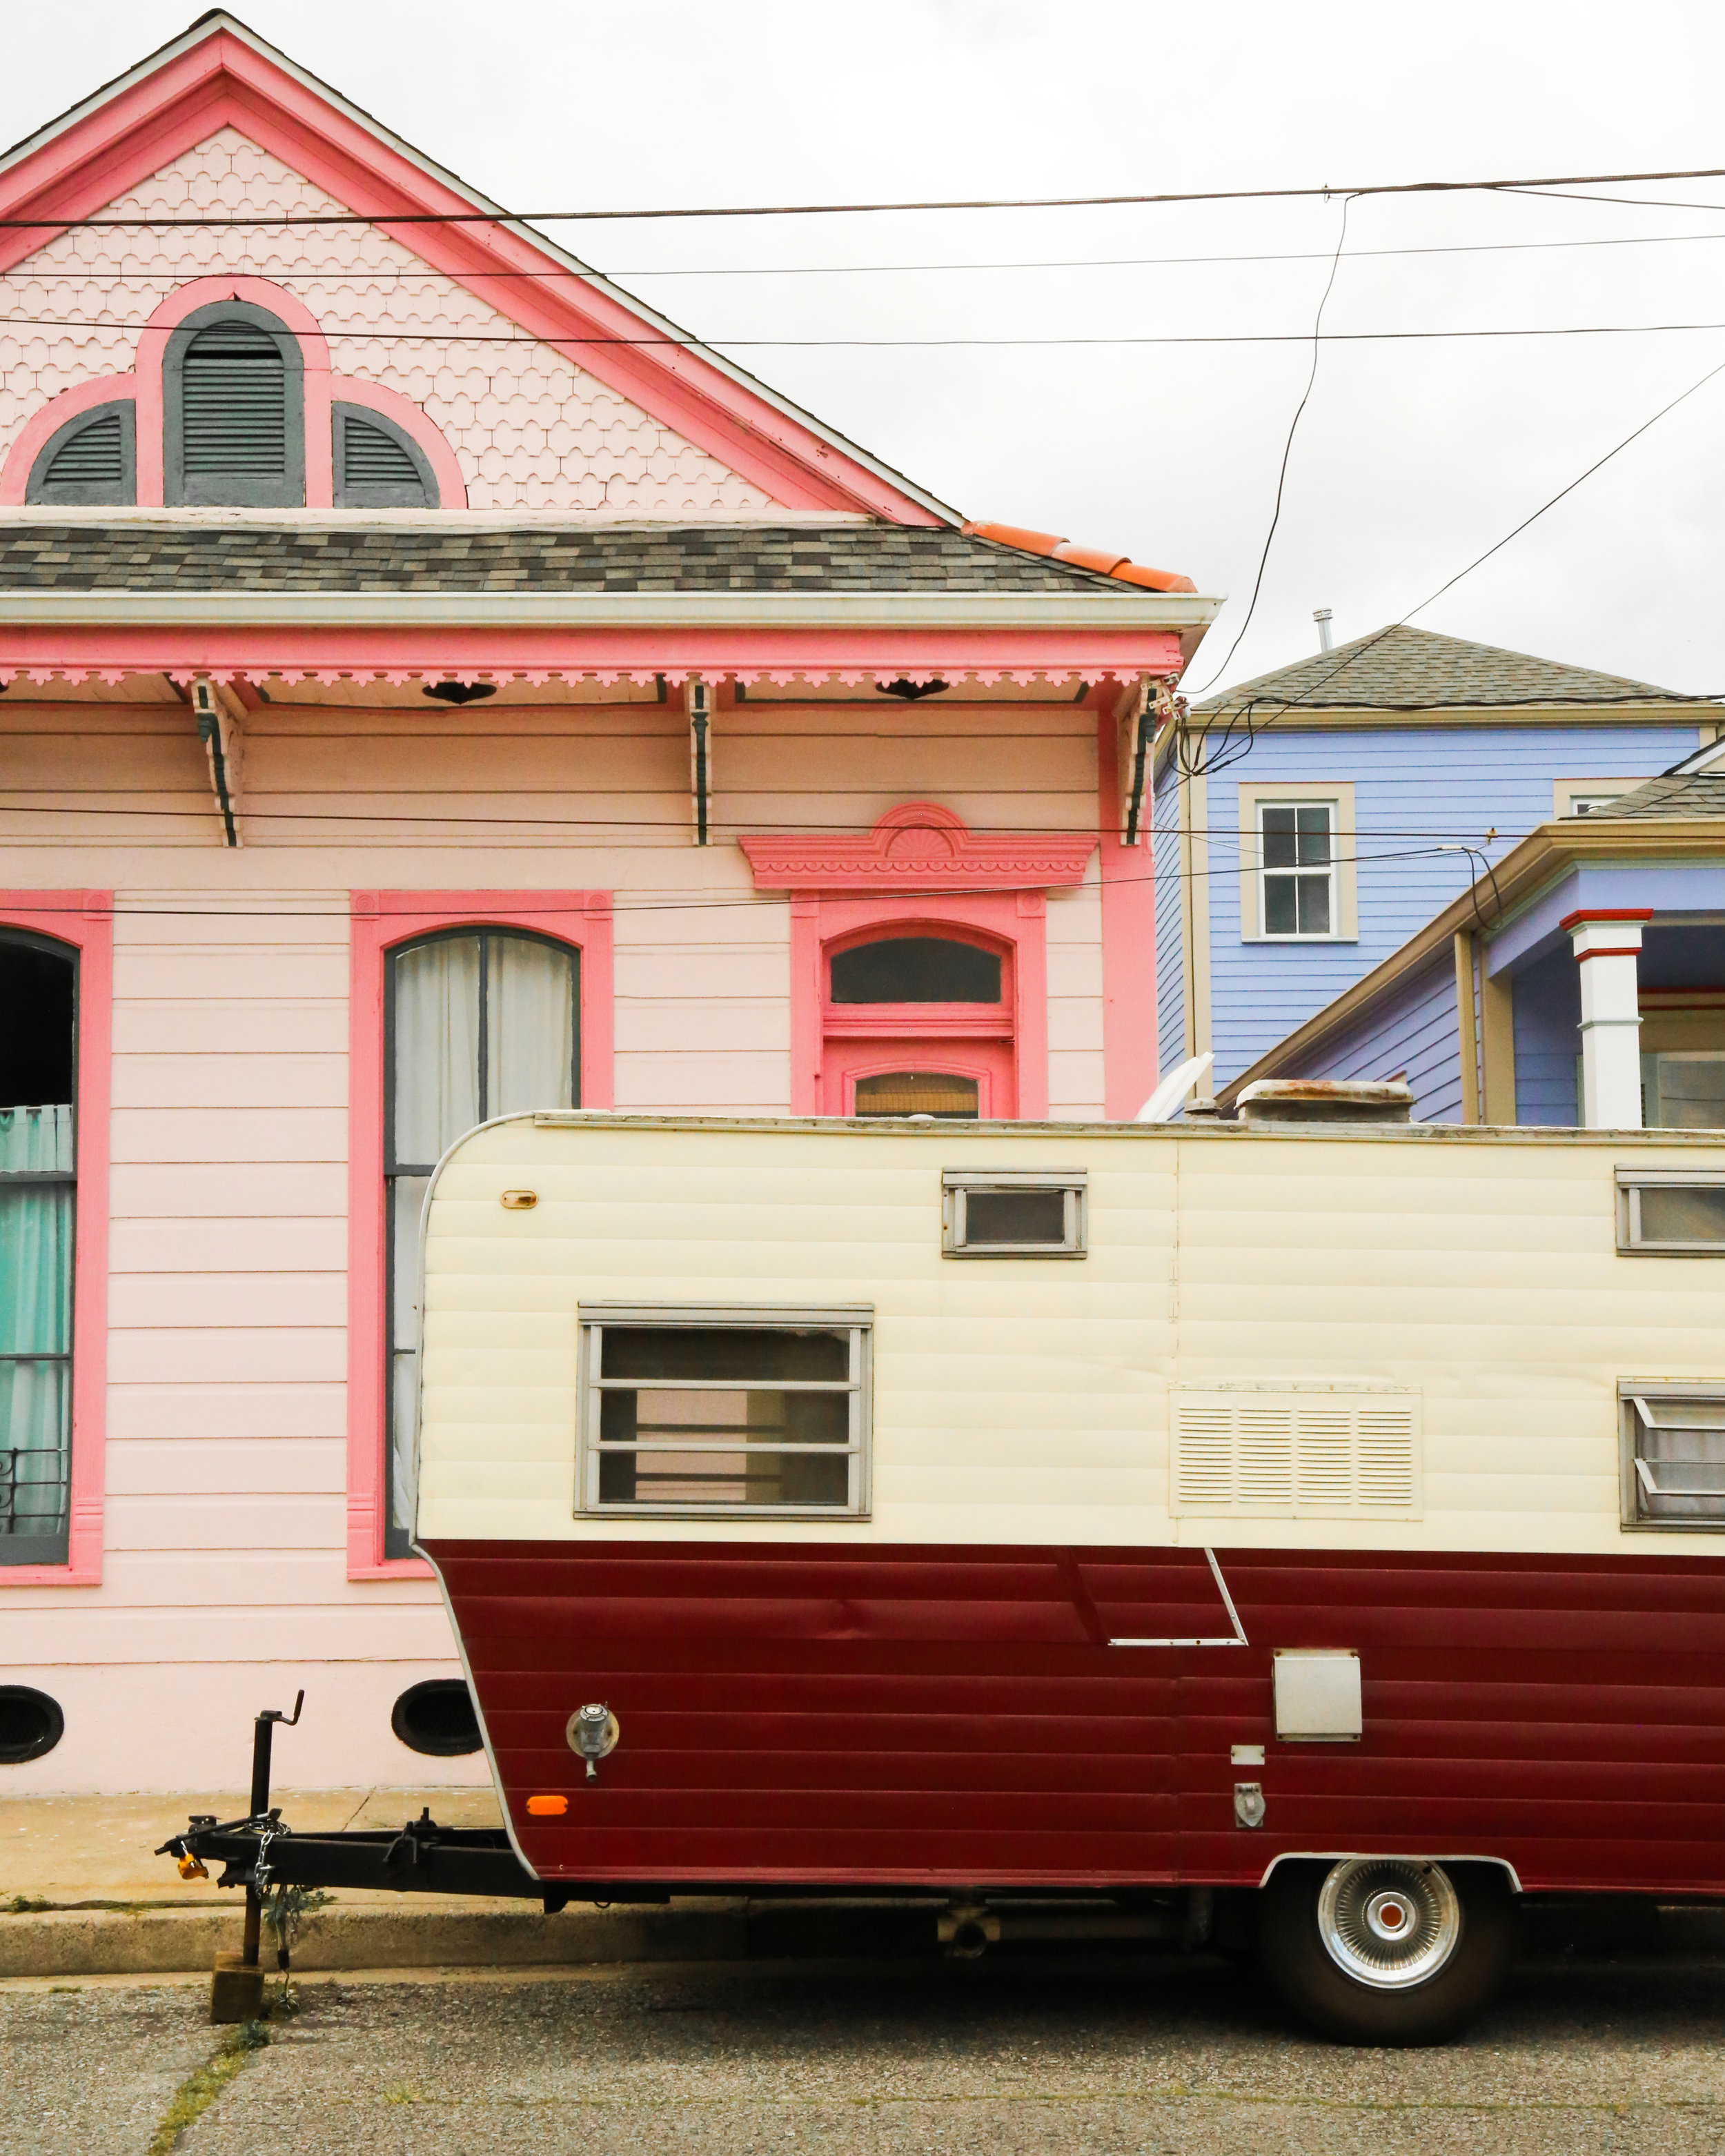 10 Things You Should Know Before Buying a Vintage Camper Trailer ...